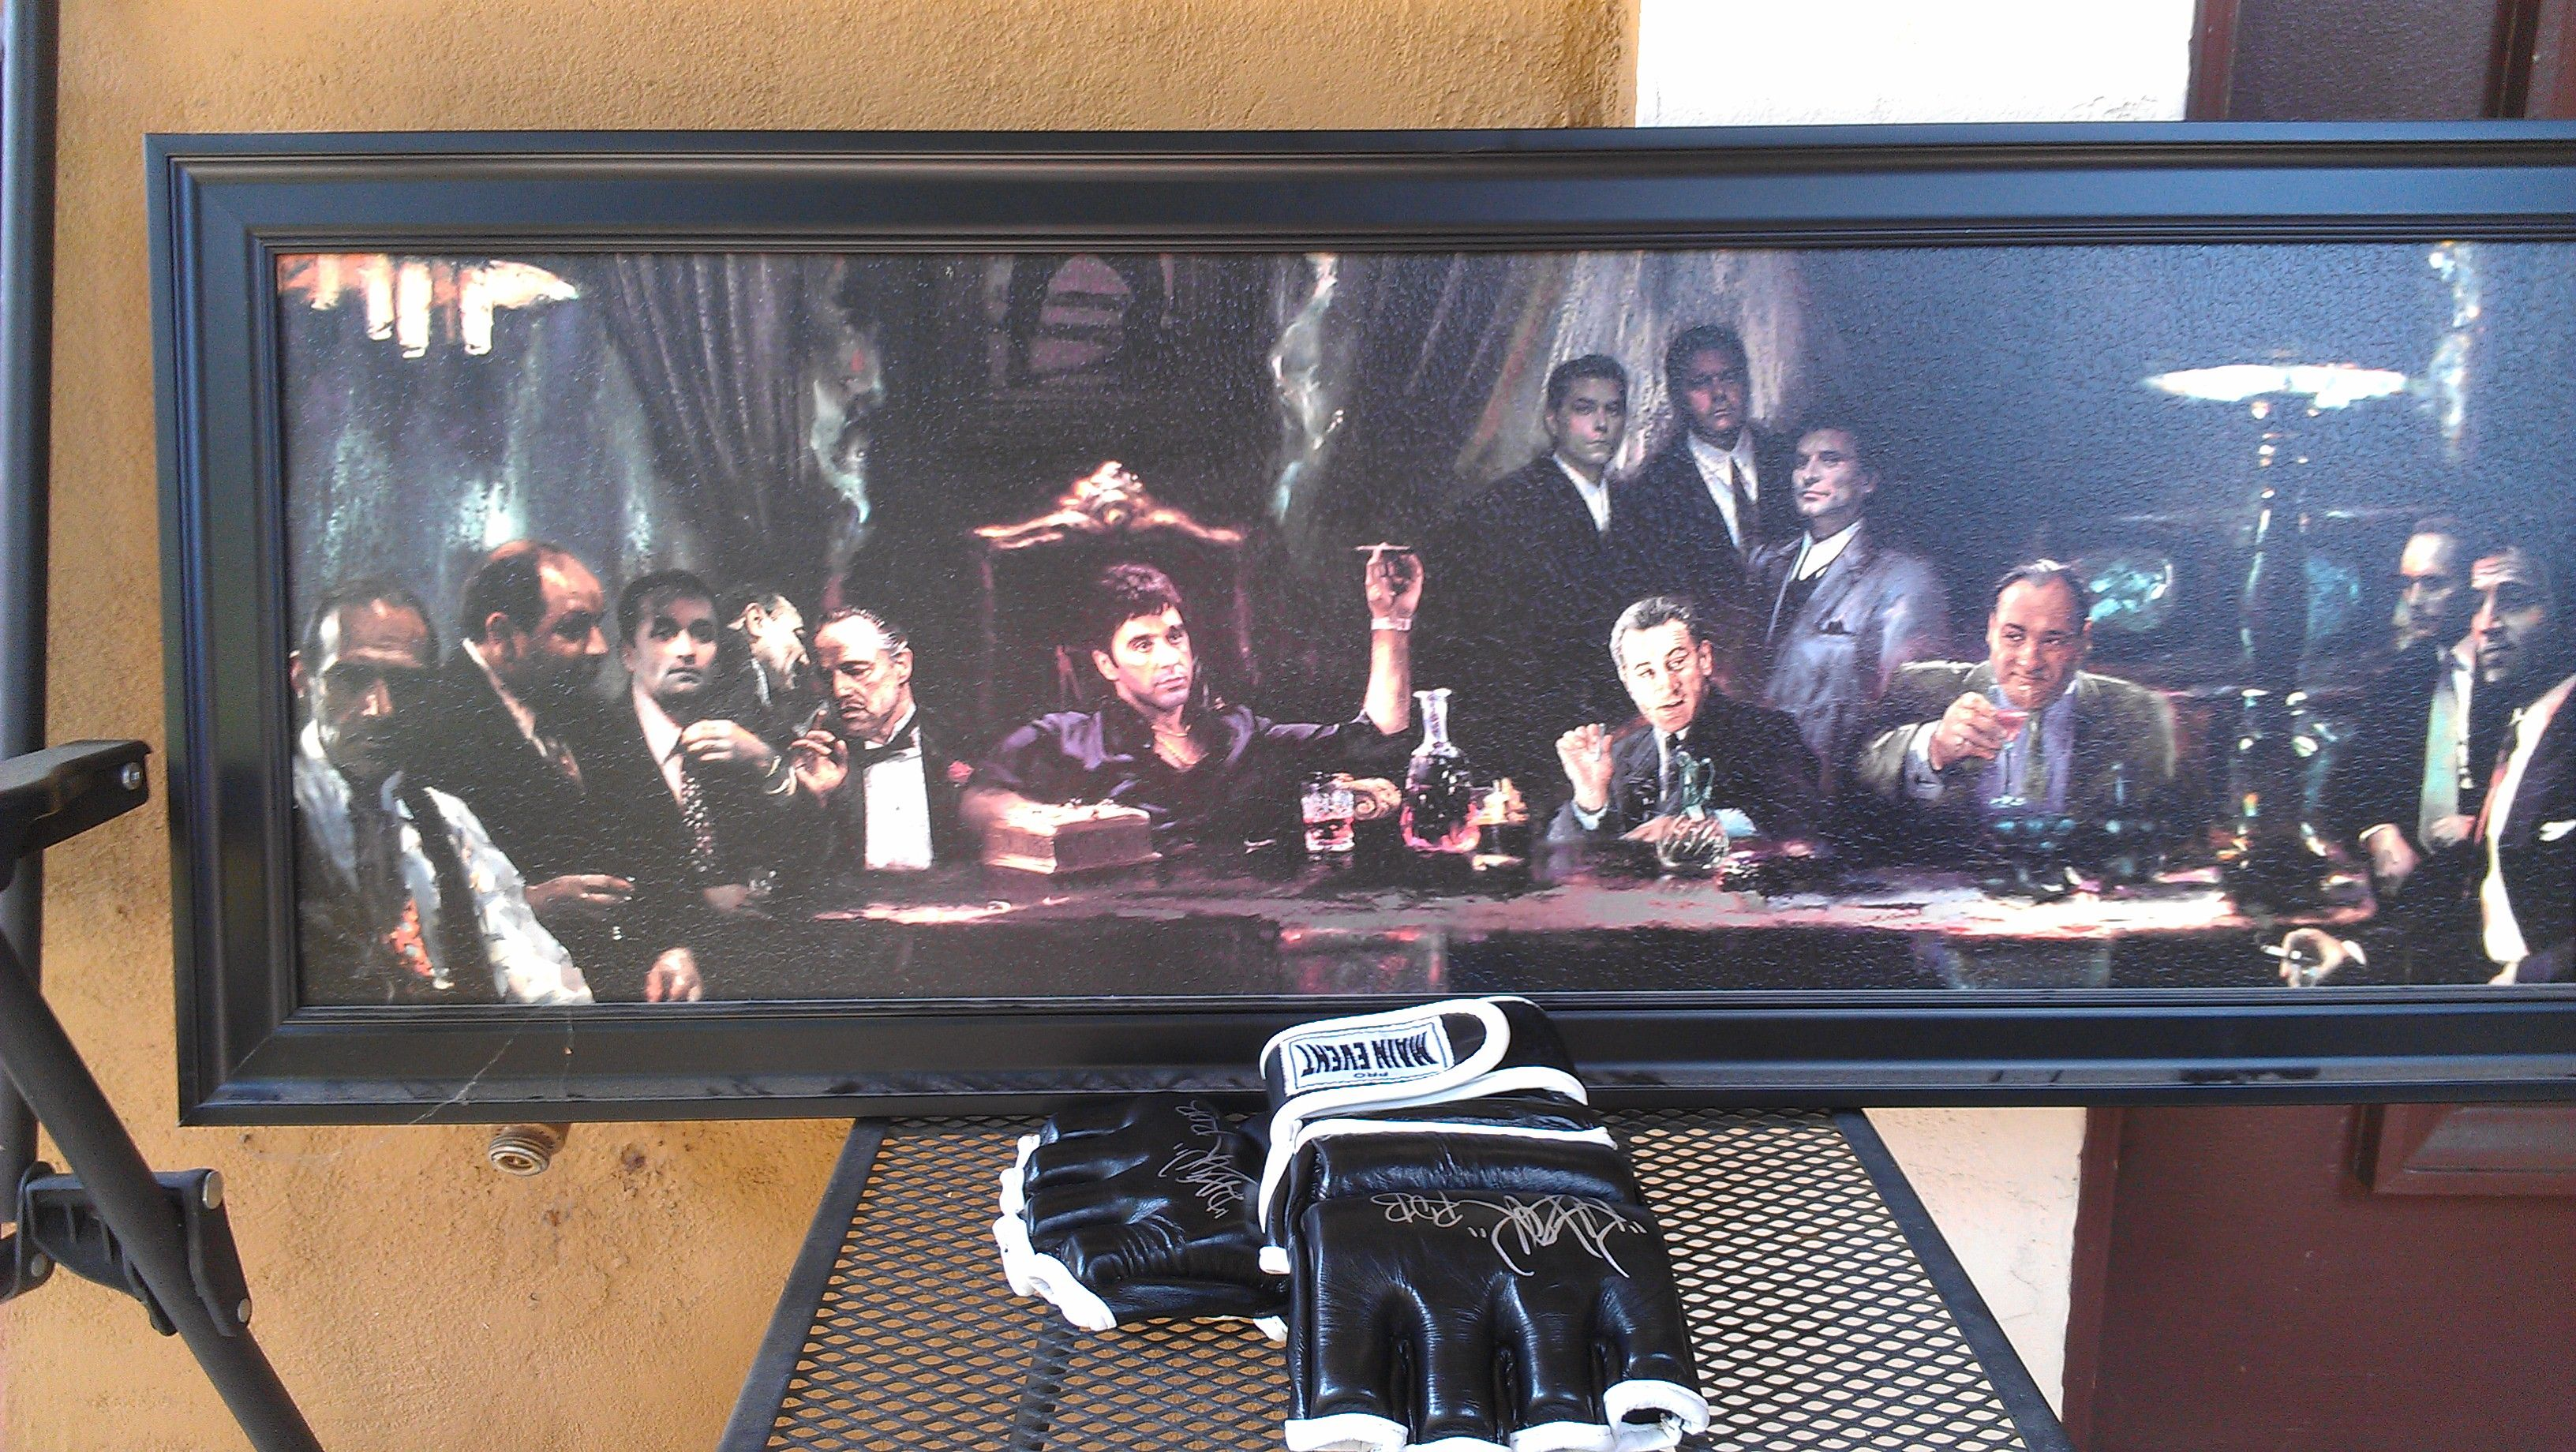 gangsters as last supper - Google Search | Gangsters ...